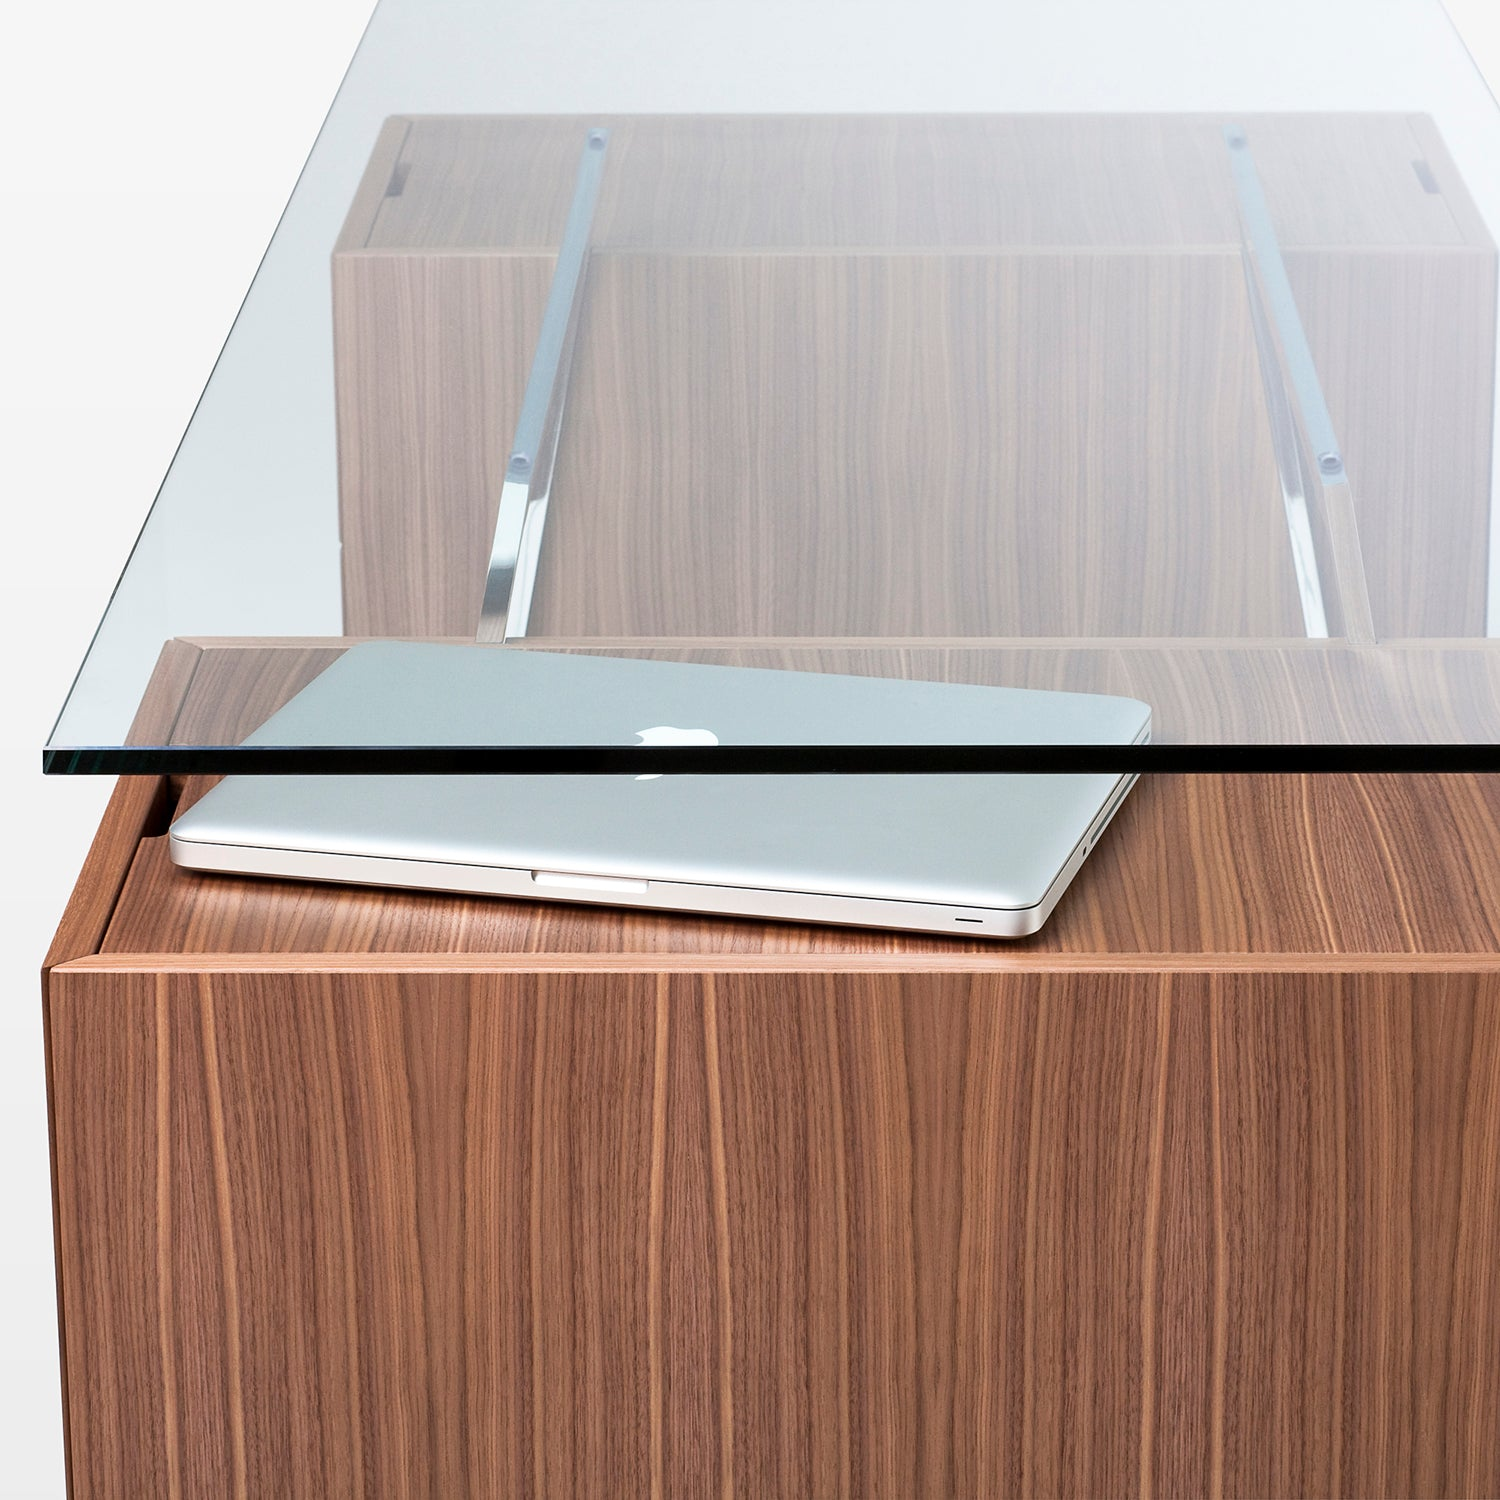 Homework 2 Desk: Double Drawers